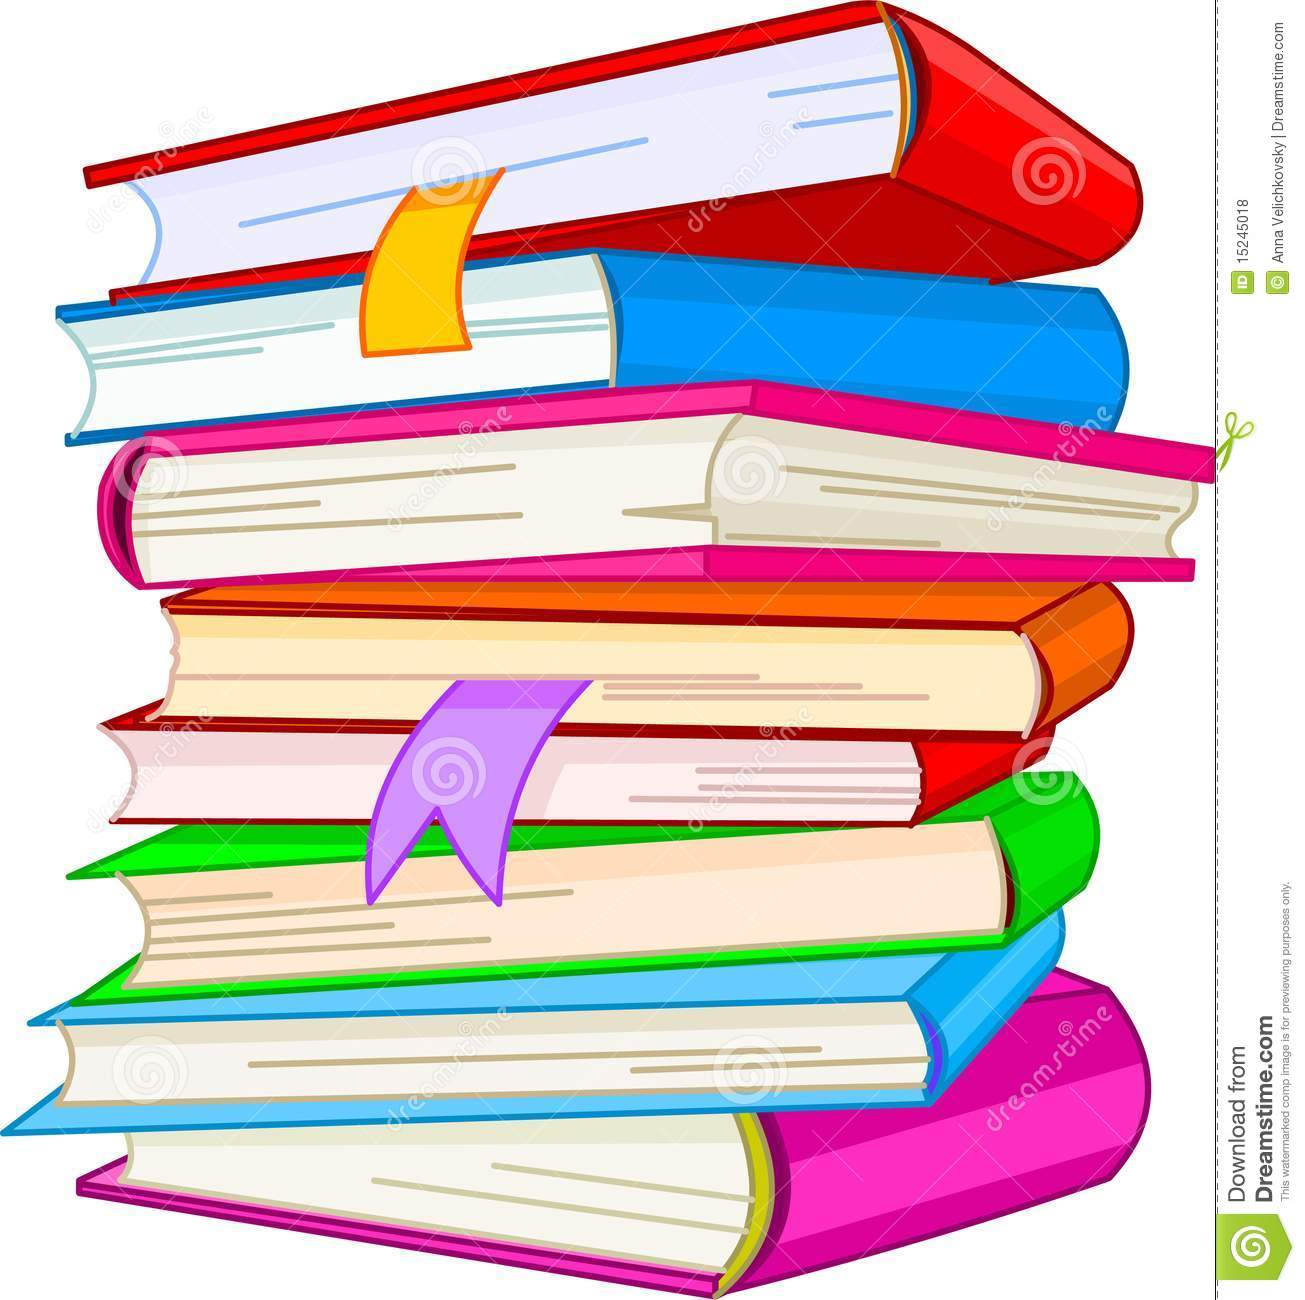 Books colorful PNG File.